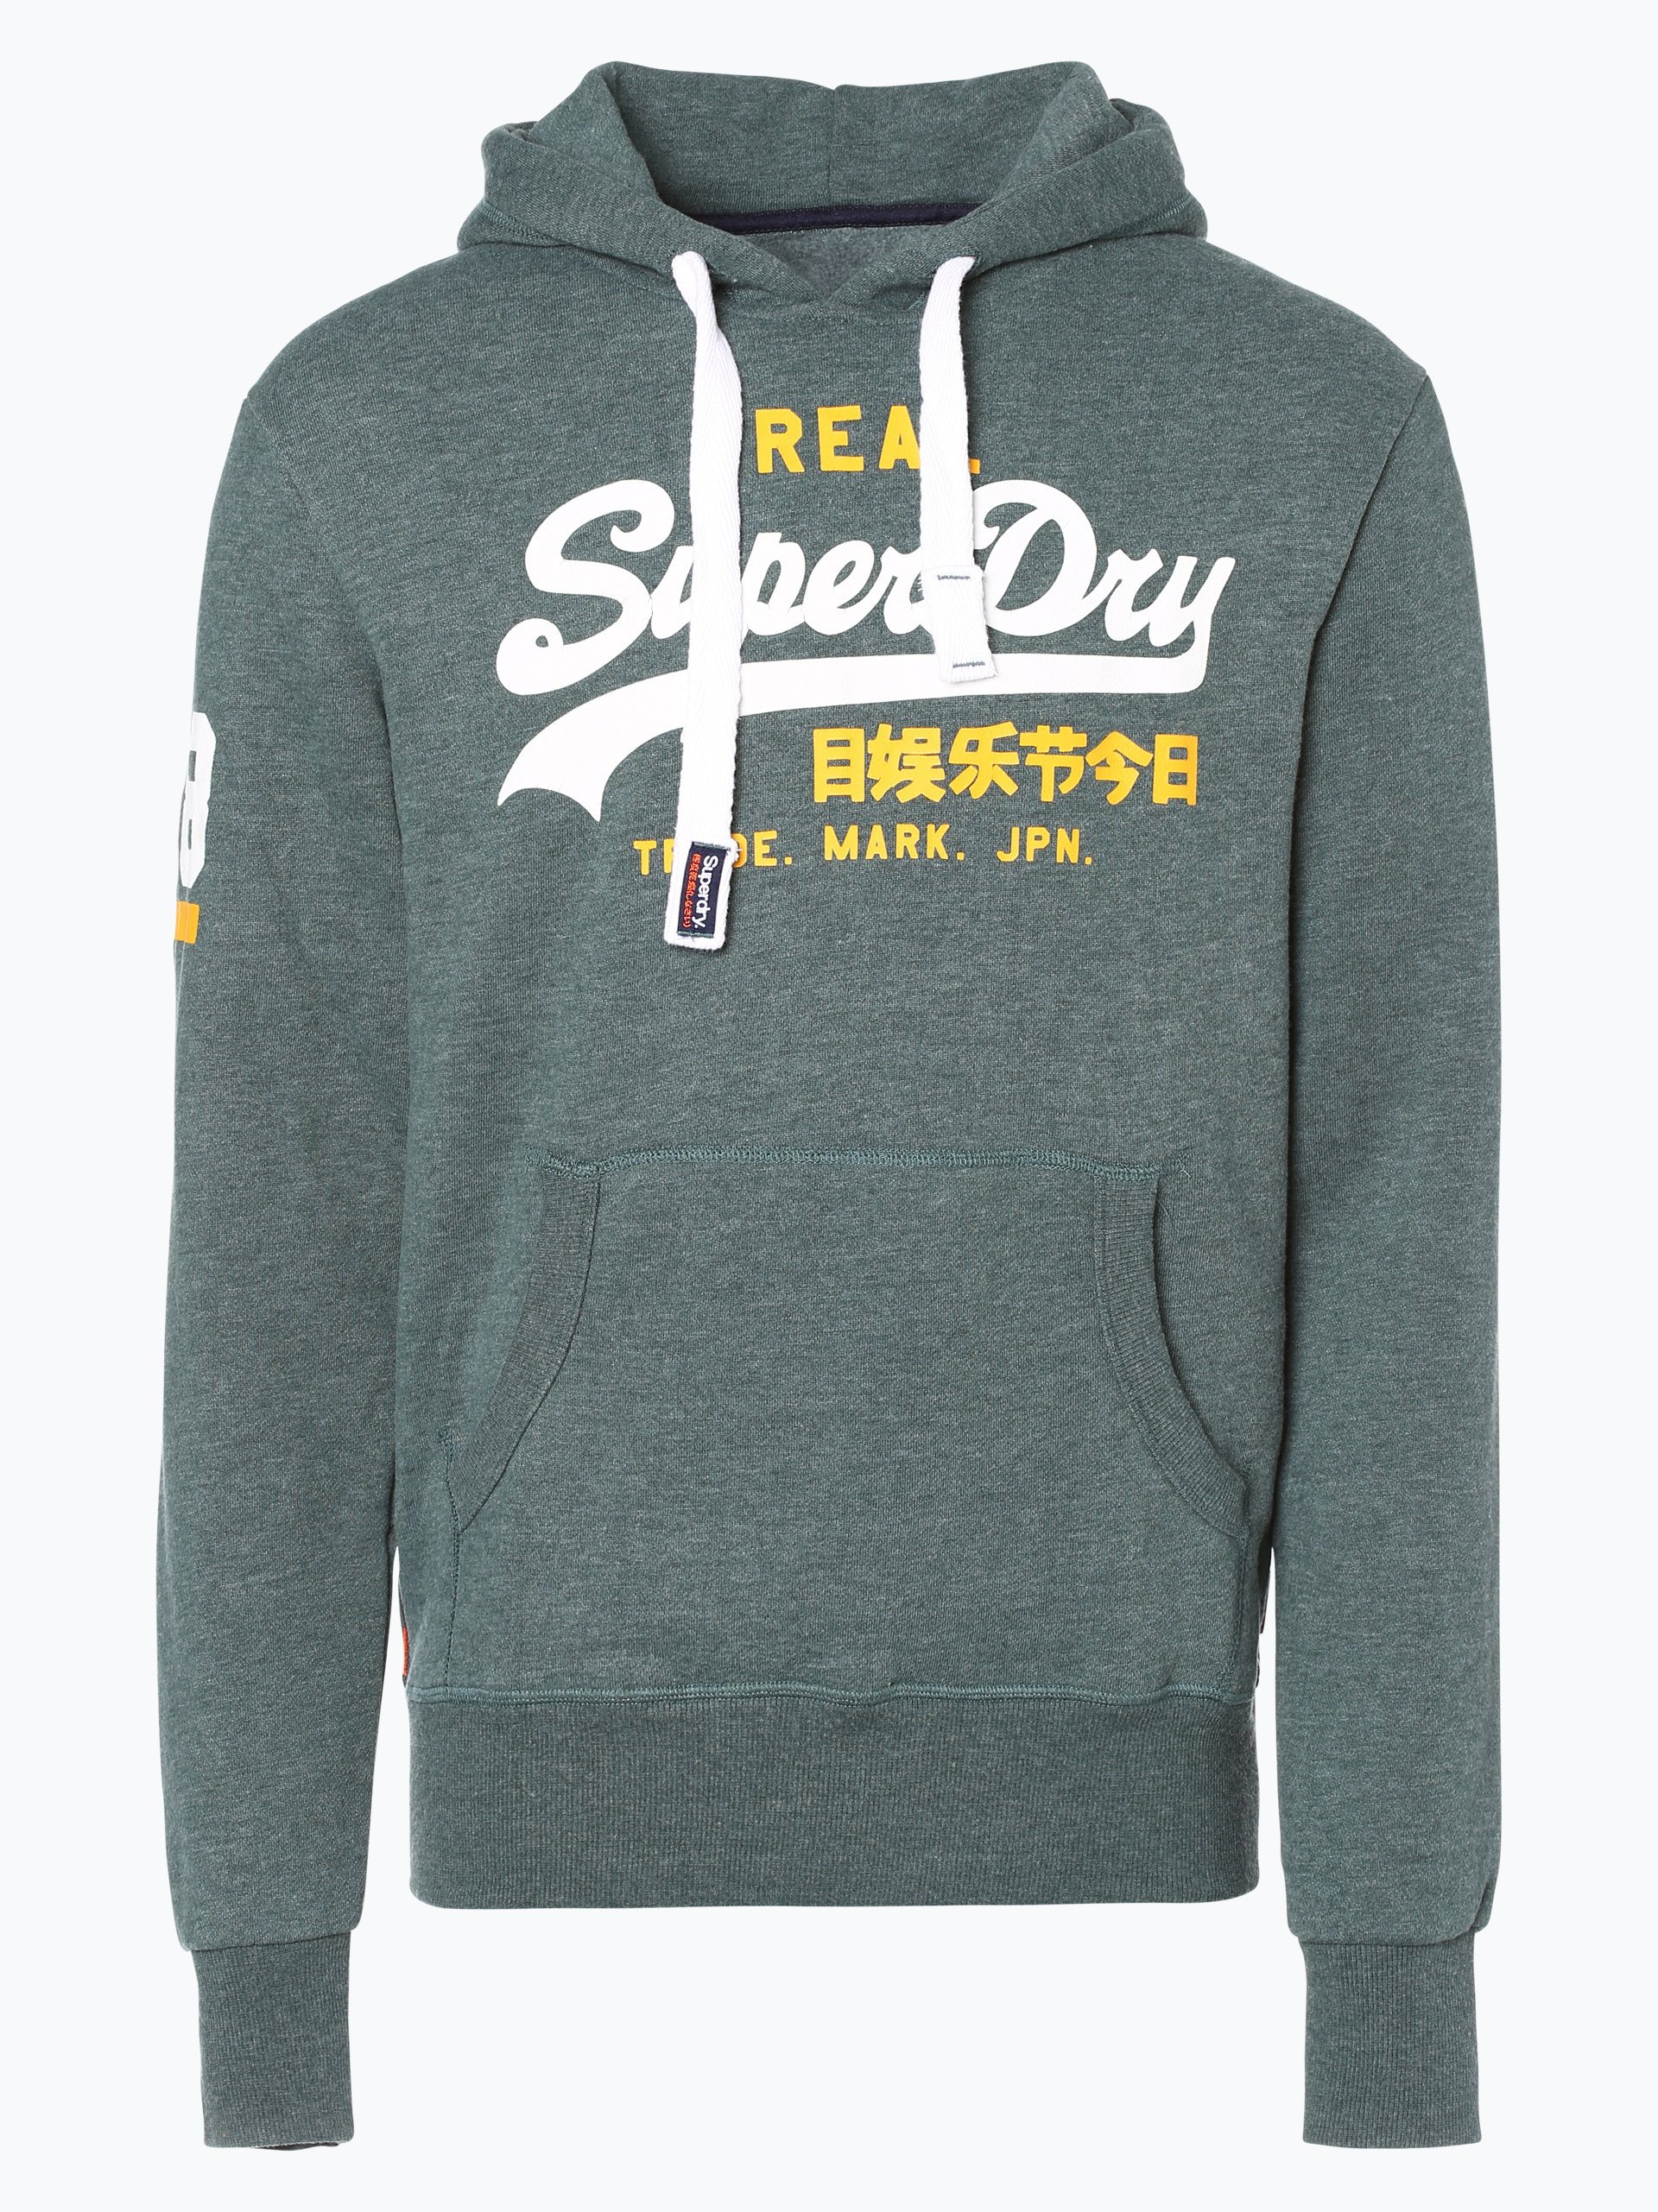 superdry herren sweatshirt gras gemustert online kaufen. Black Bedroom Furniture Sets. Home Design Ideas